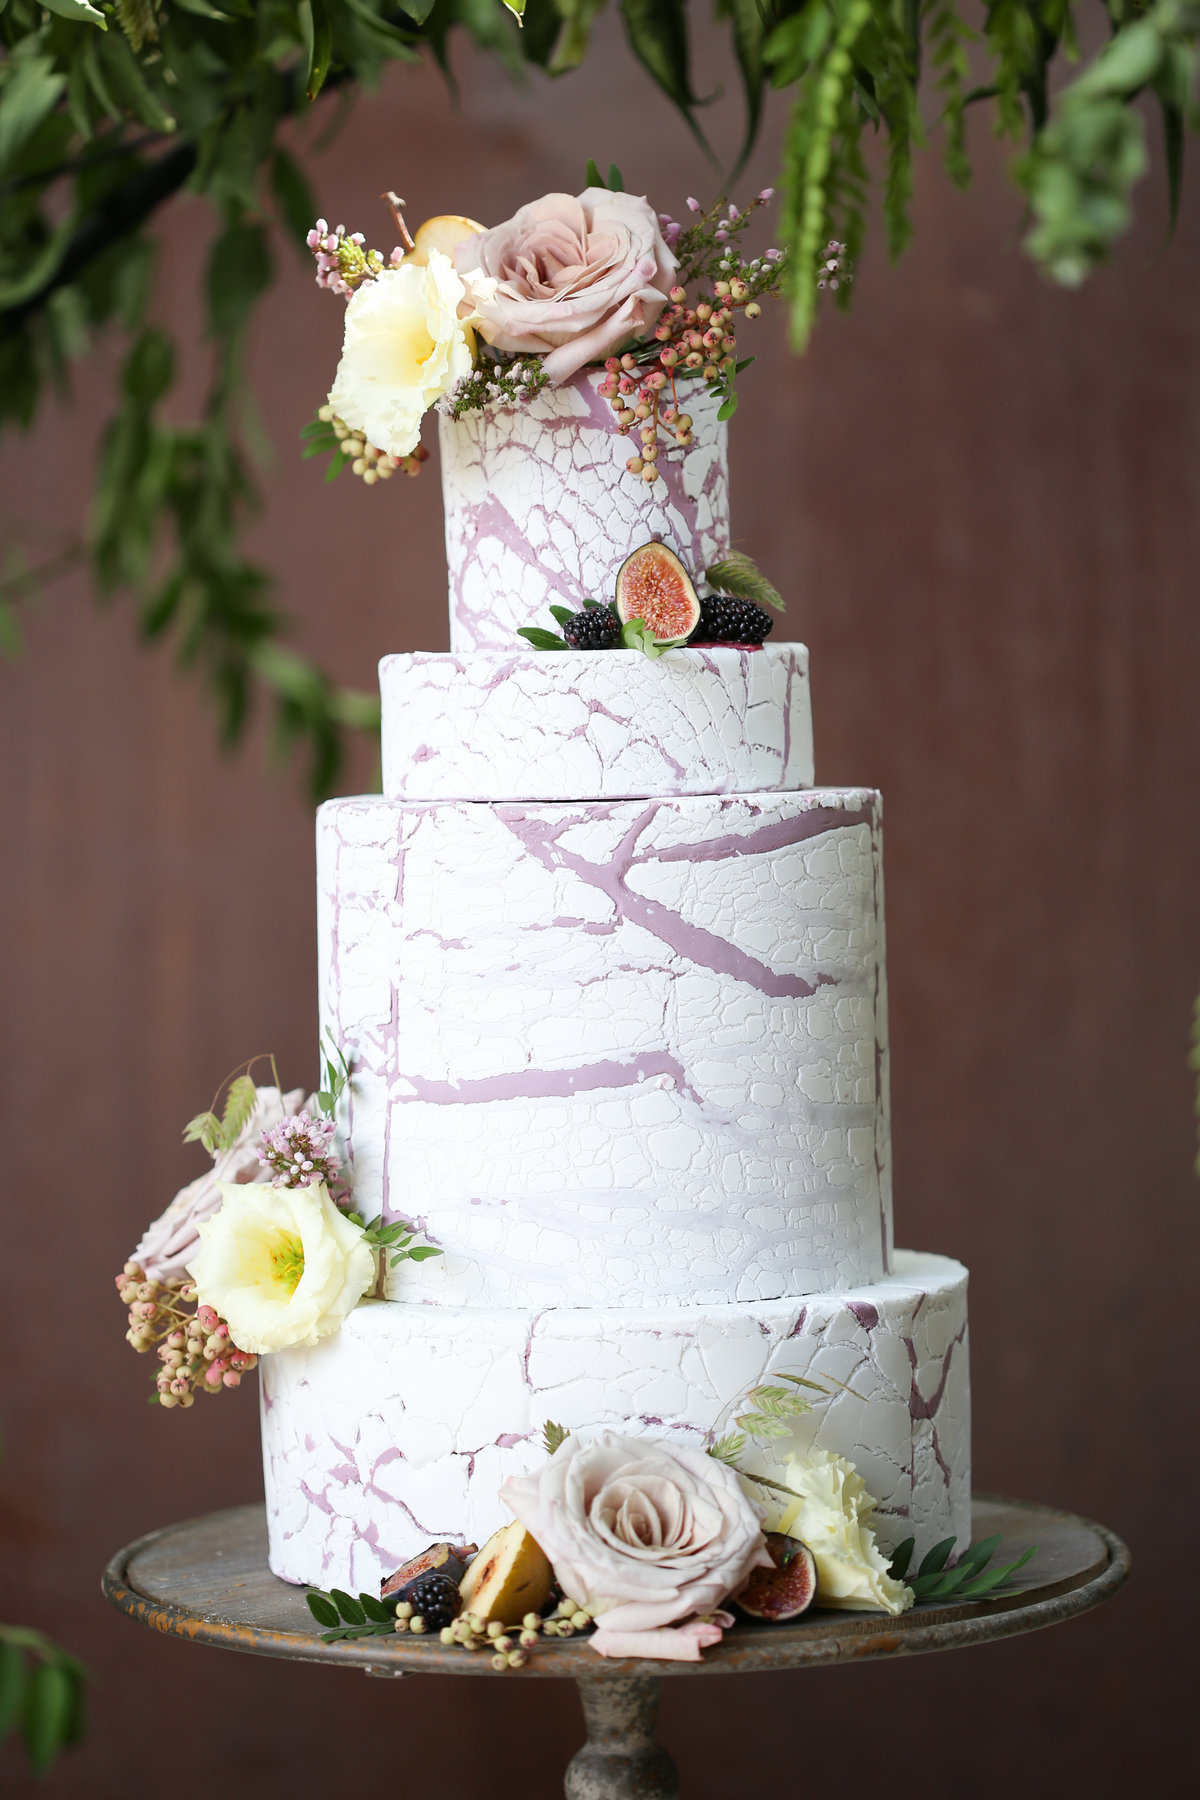 Tuscan Styled Shoot - Petals & Pastries Cake - Mariam Saifan Photography